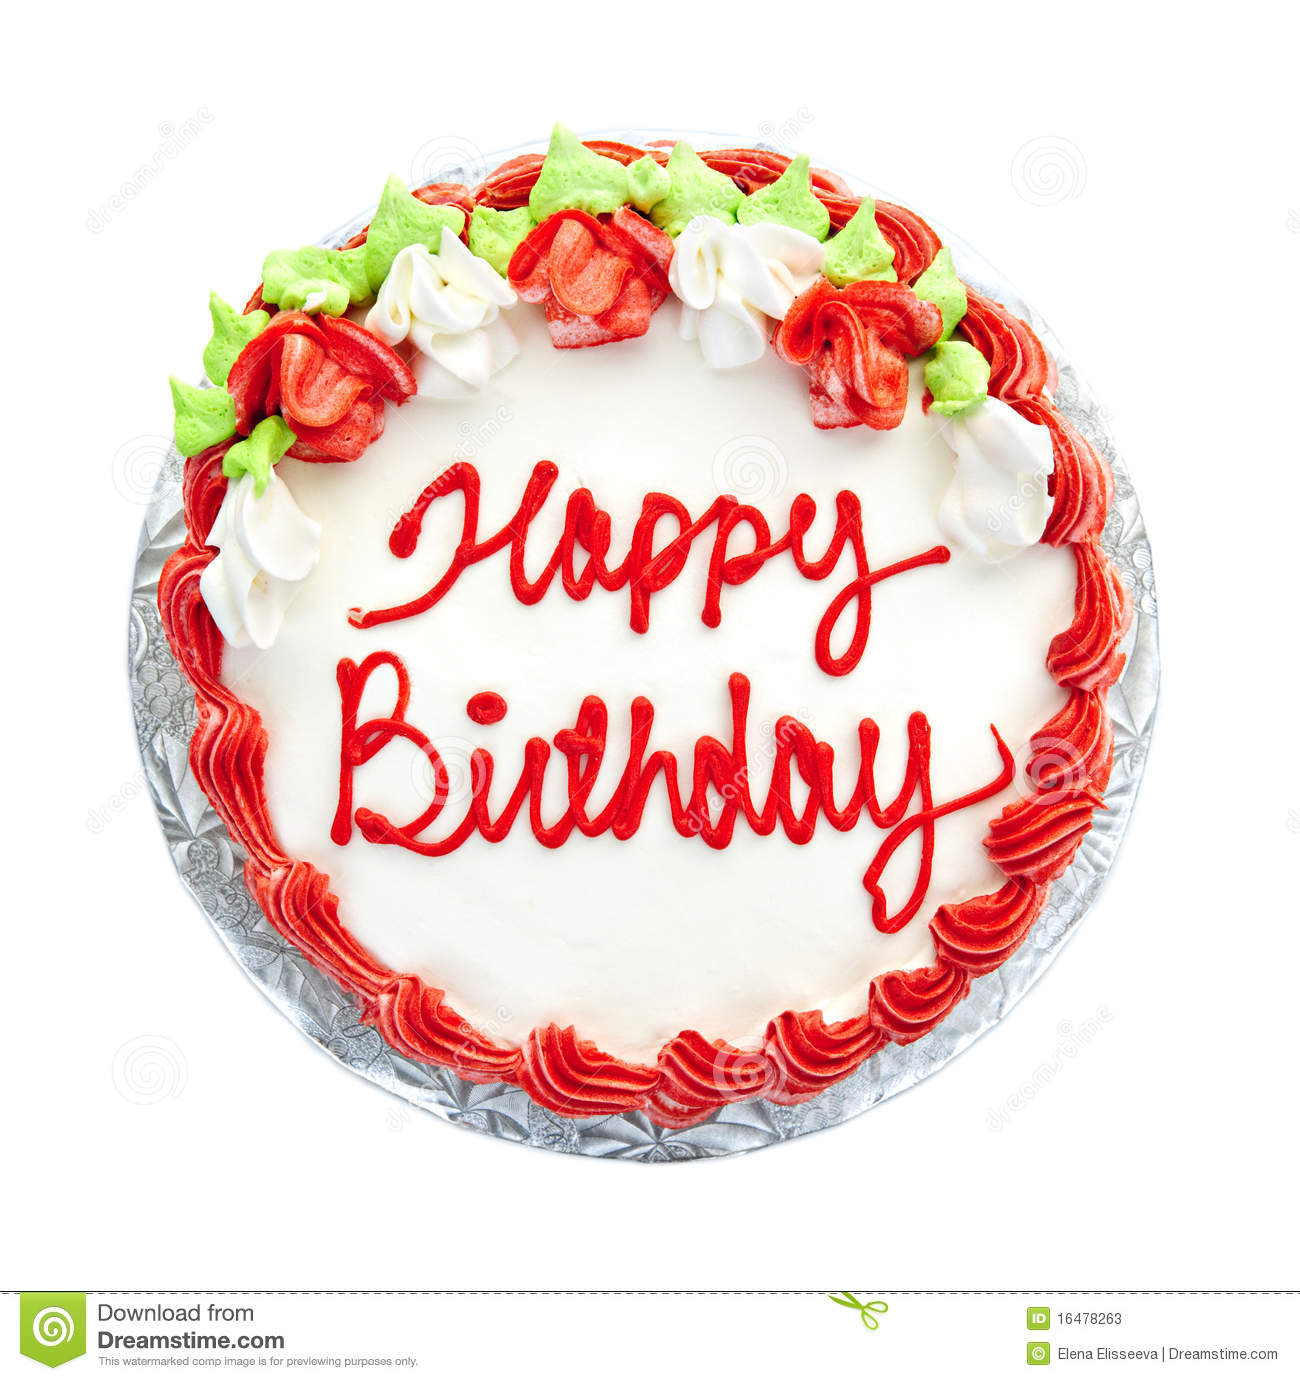 Elegant Birthday Cake With Candles Image Inspiration of Cake and